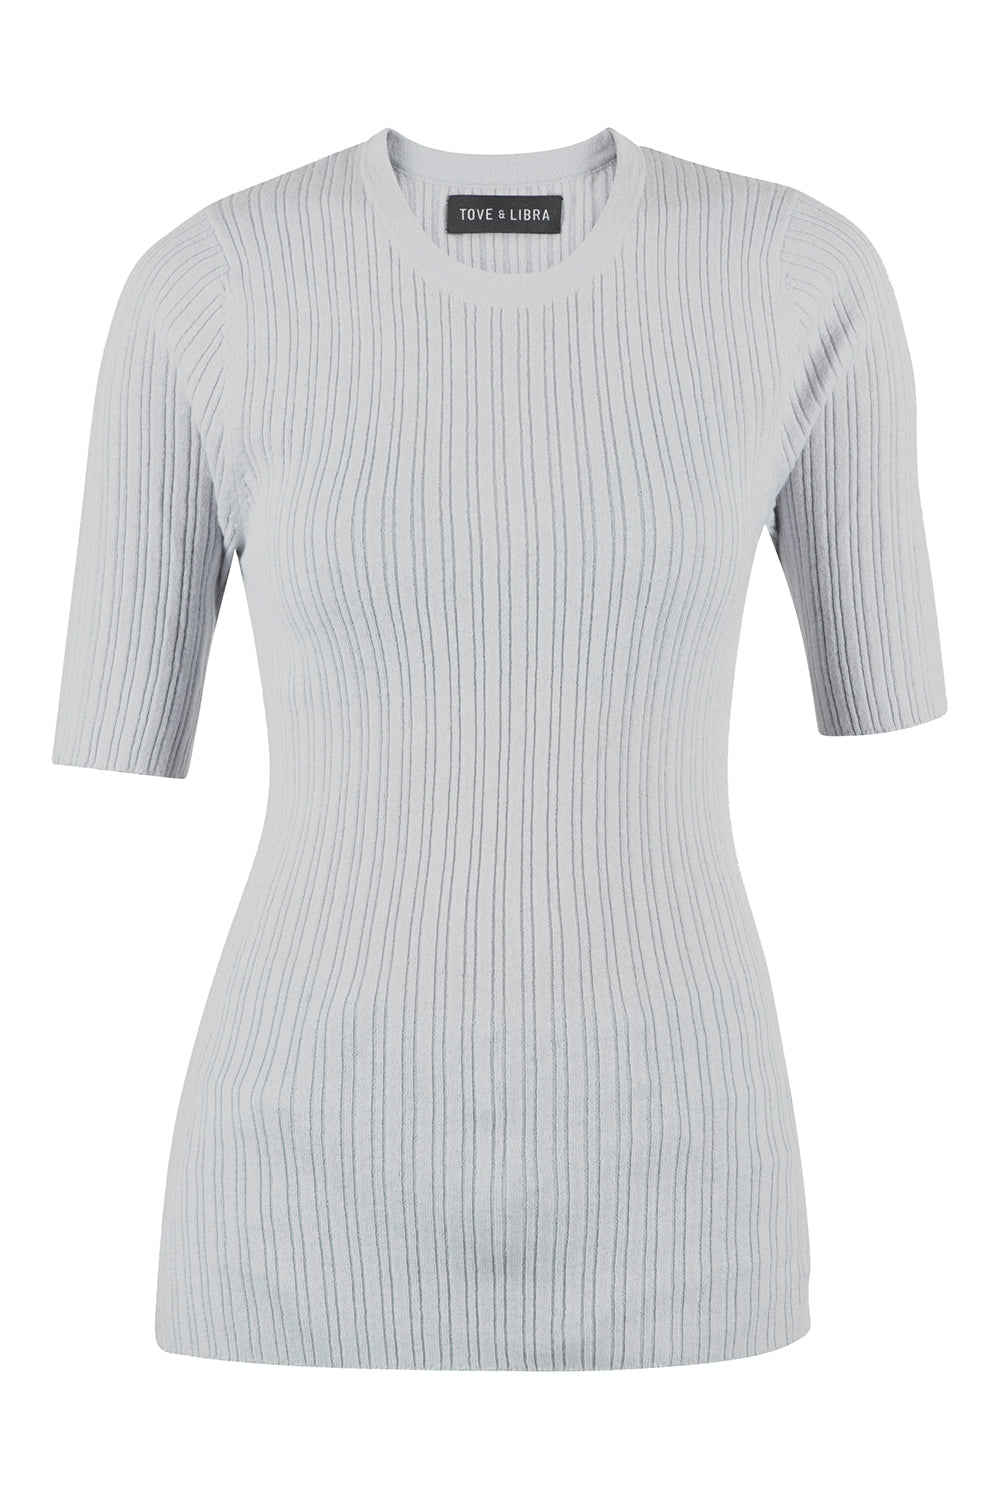 Essential Ribbed Tee - Grey Pearl